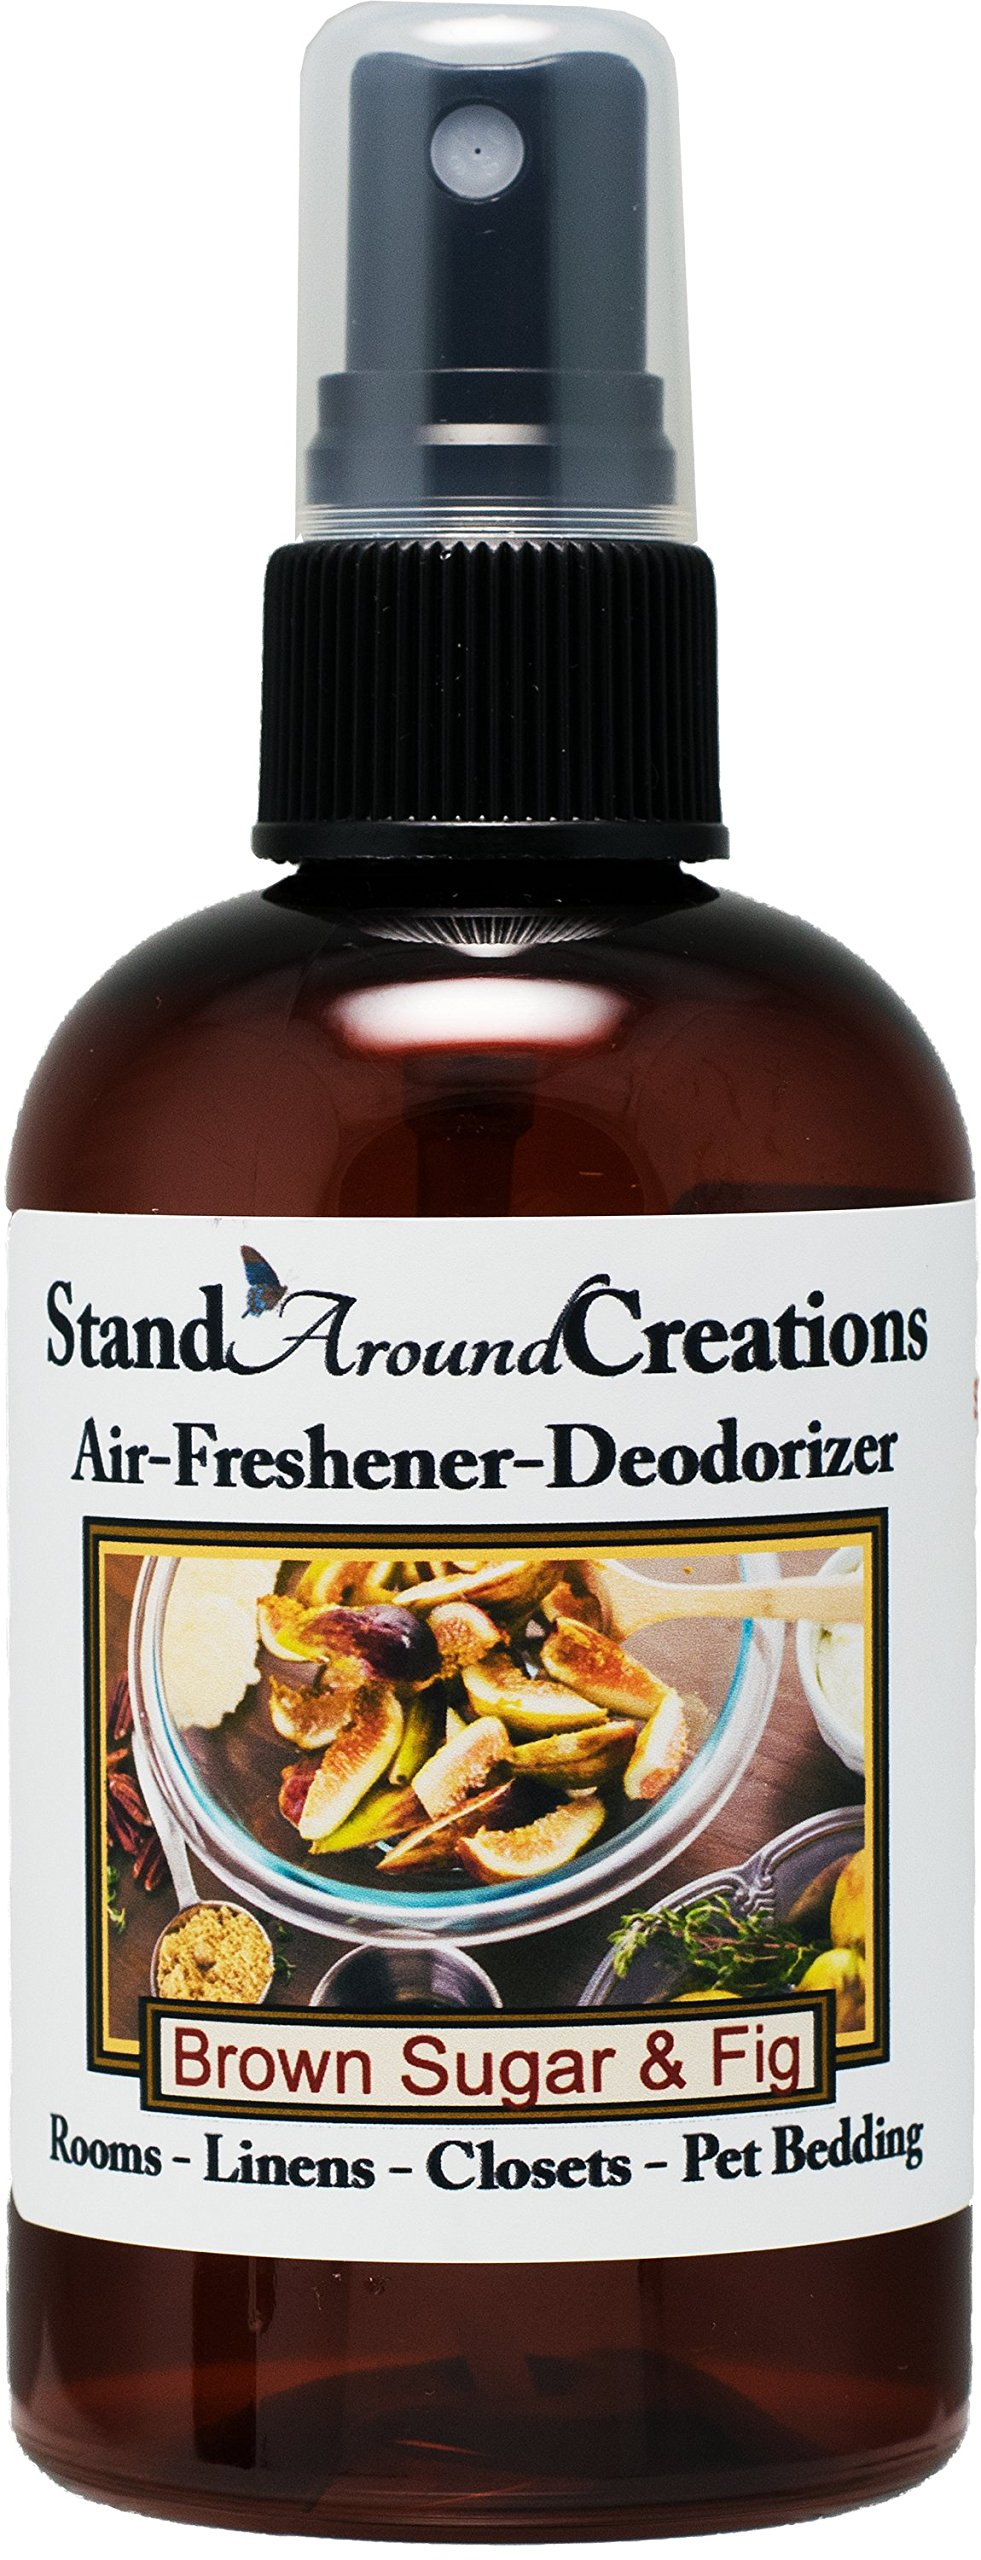 Concentrated Spray For Room / Linen / Room Deodorizer / Air Freshener - 4 fl oz - Scent - Brown Sugar And Fig: It's a great all season addition with notes of fig, caramelized brown sugar and musk.